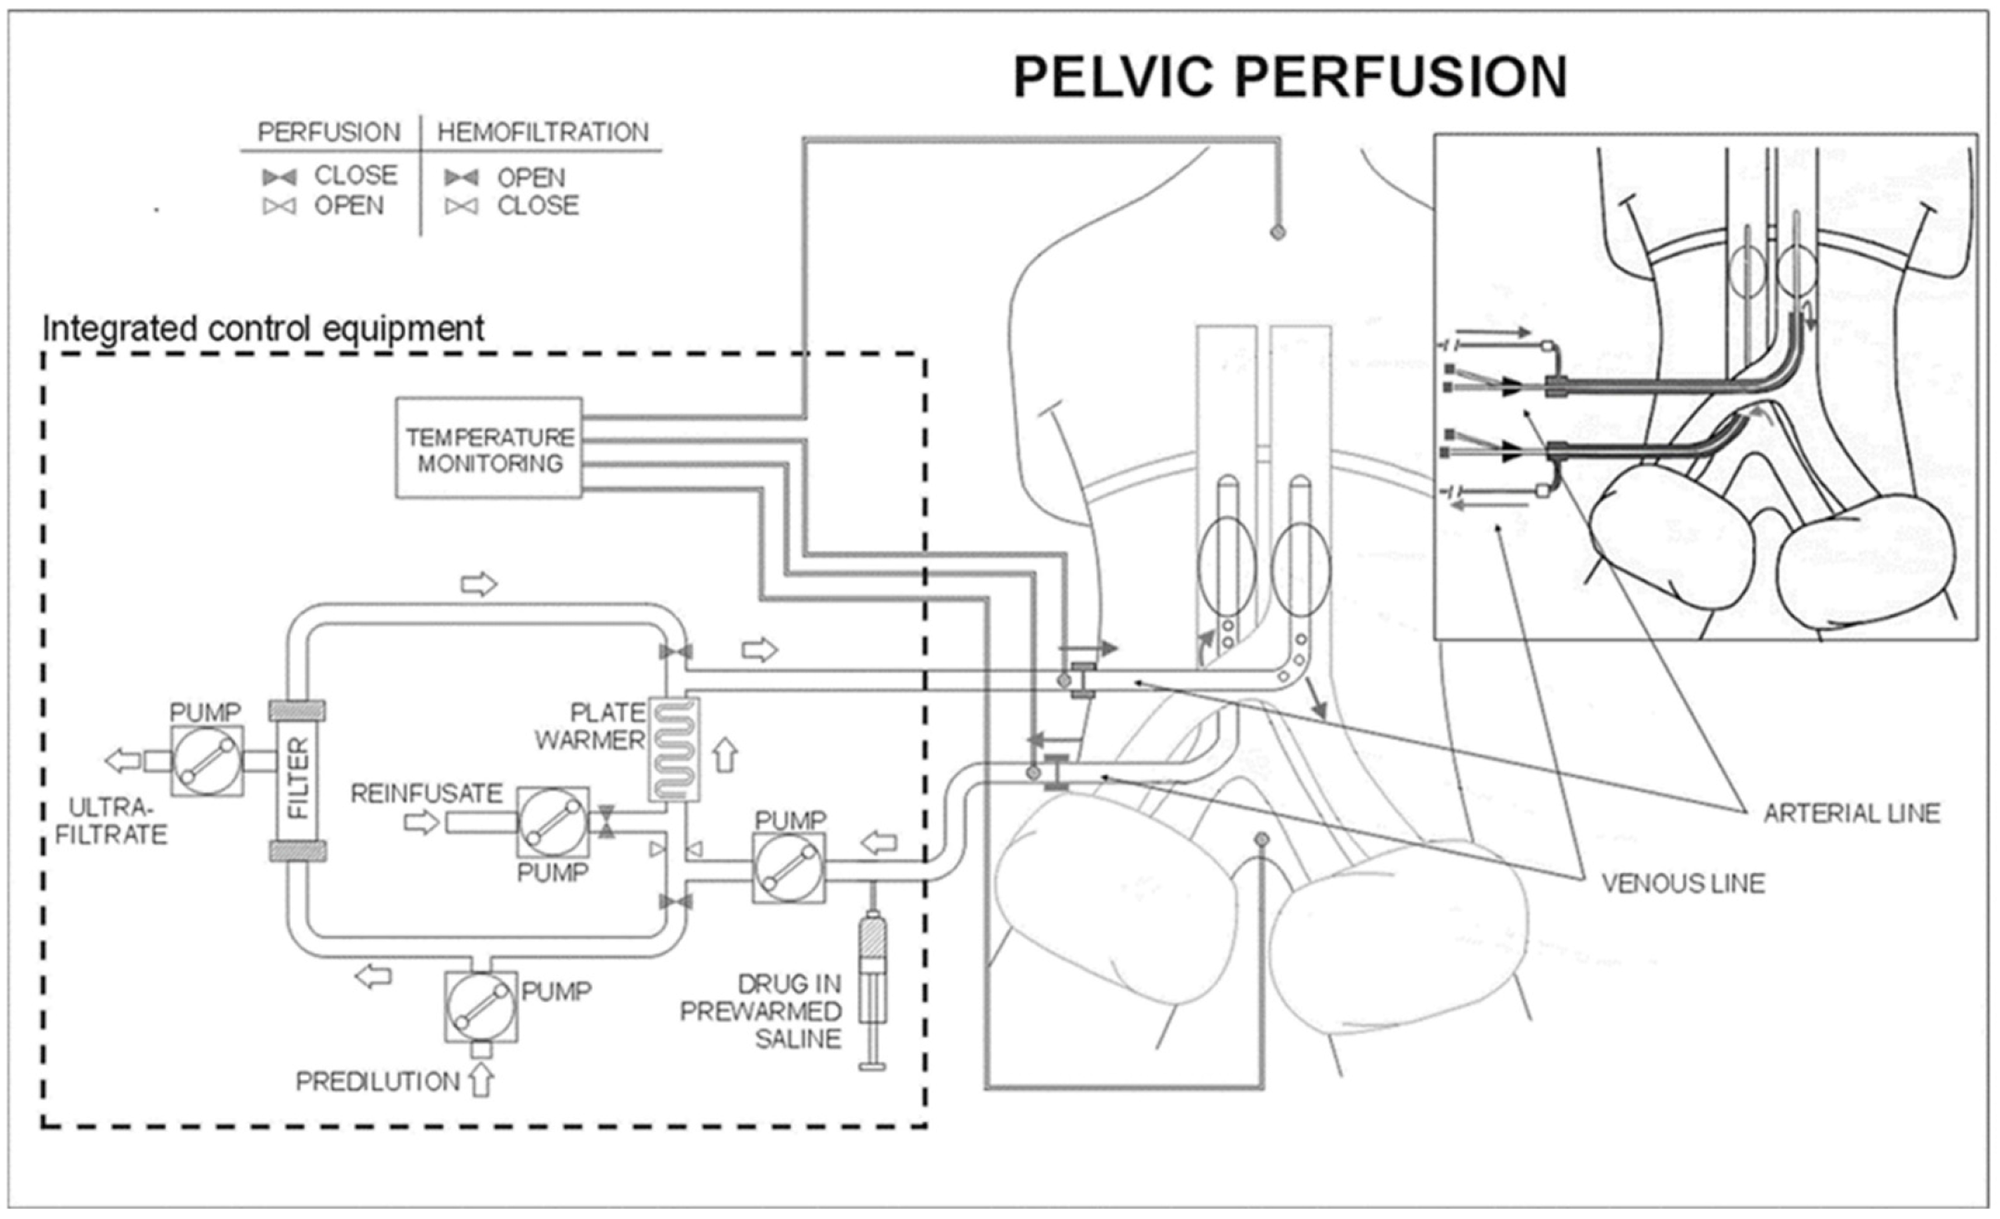 Schematic representation of the surgical and percutaneous hypoxic pelvic perfusion (HPP) procedures, with chemofiltration